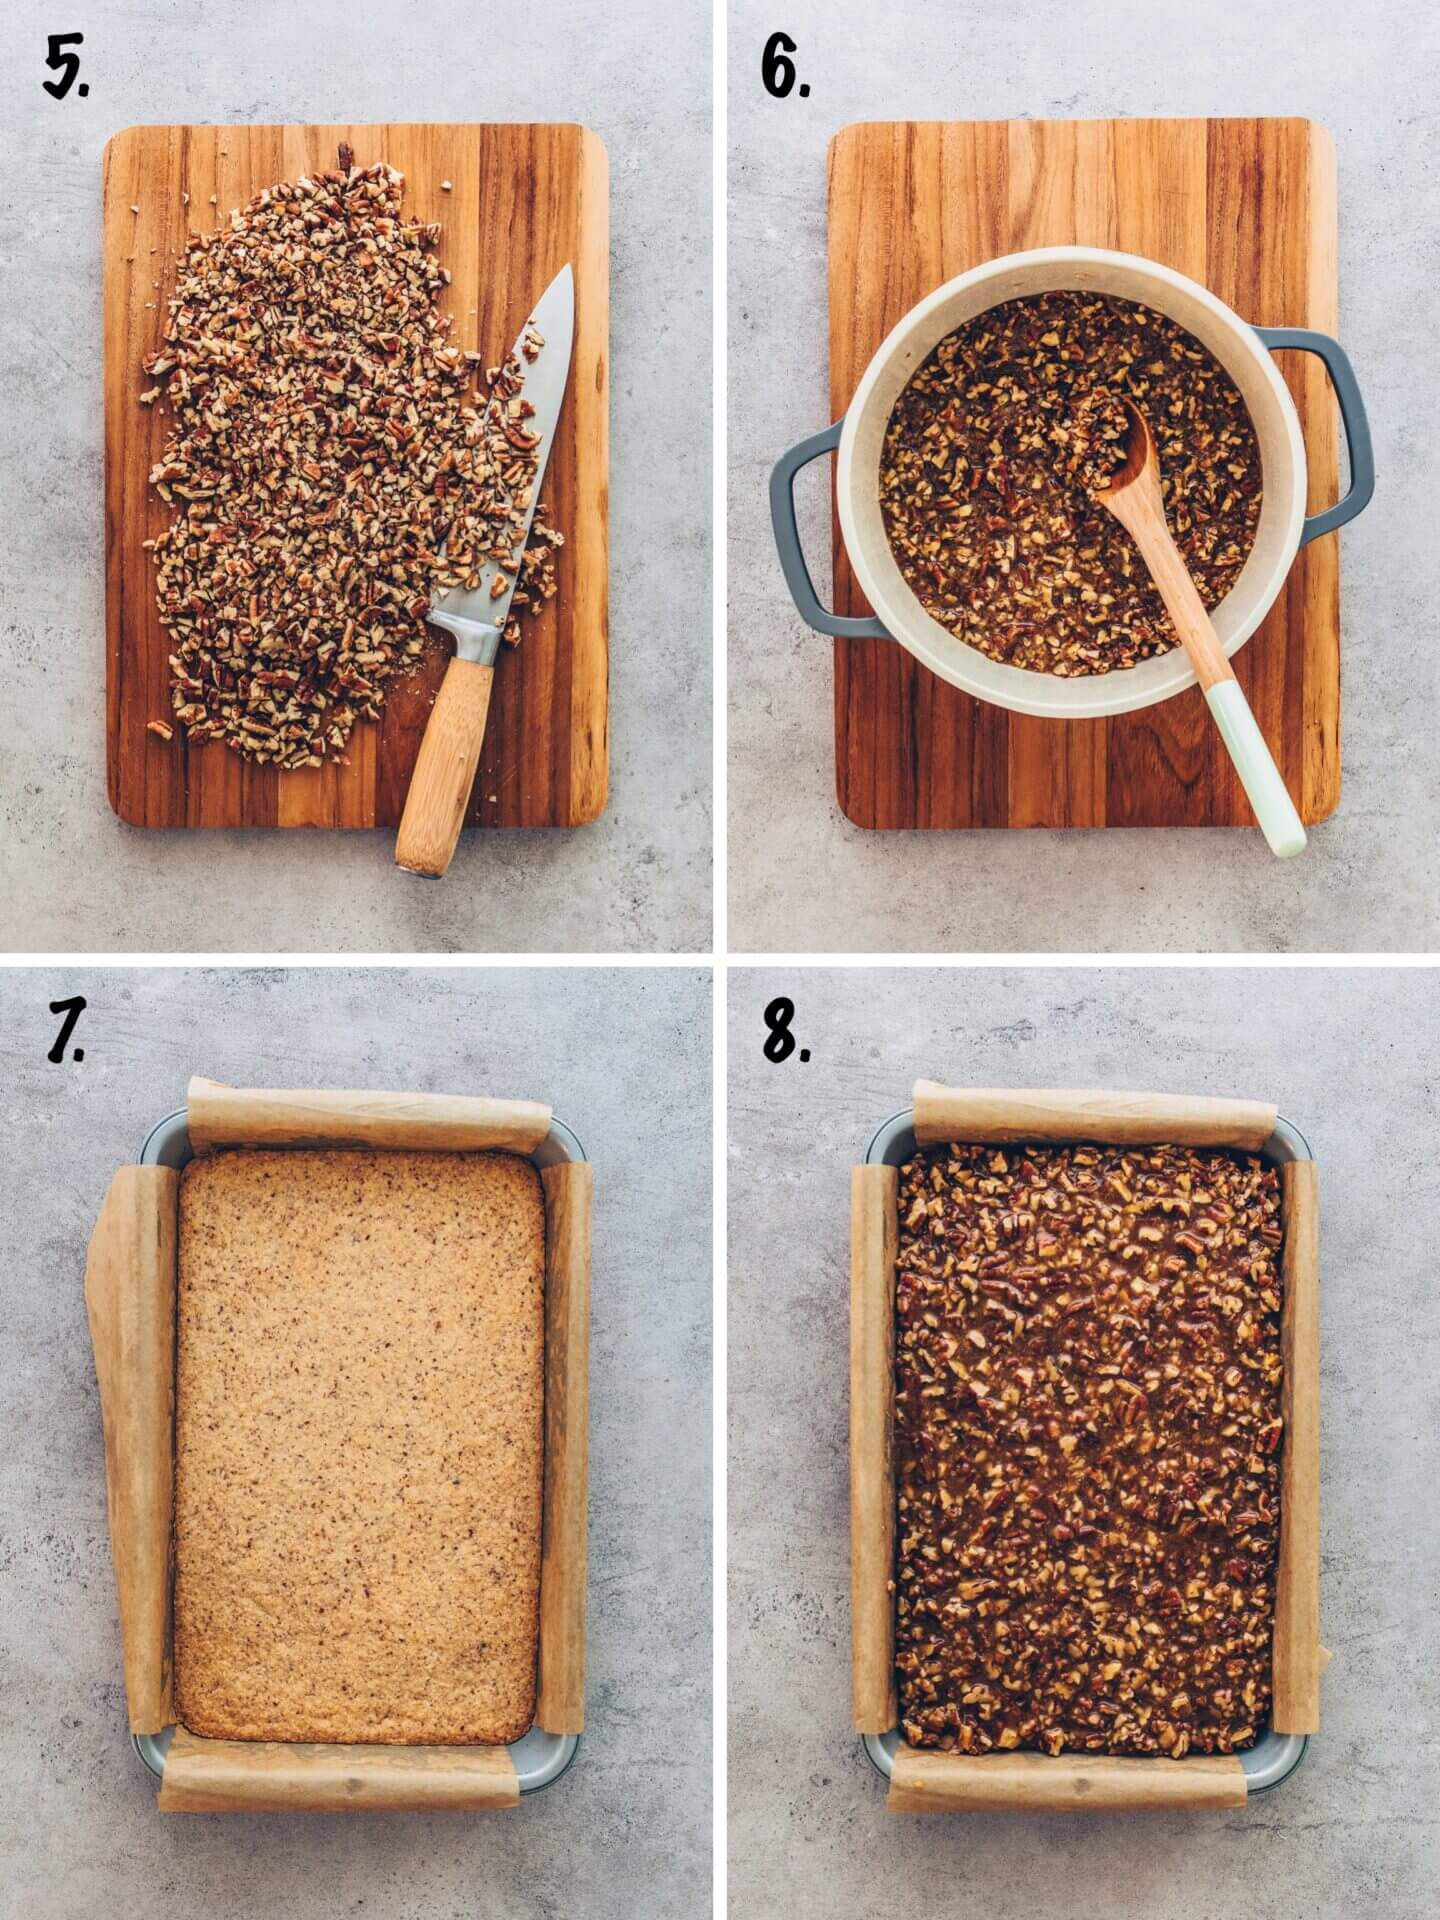 Homemade Pecan Pie Bars step-by-step instruction